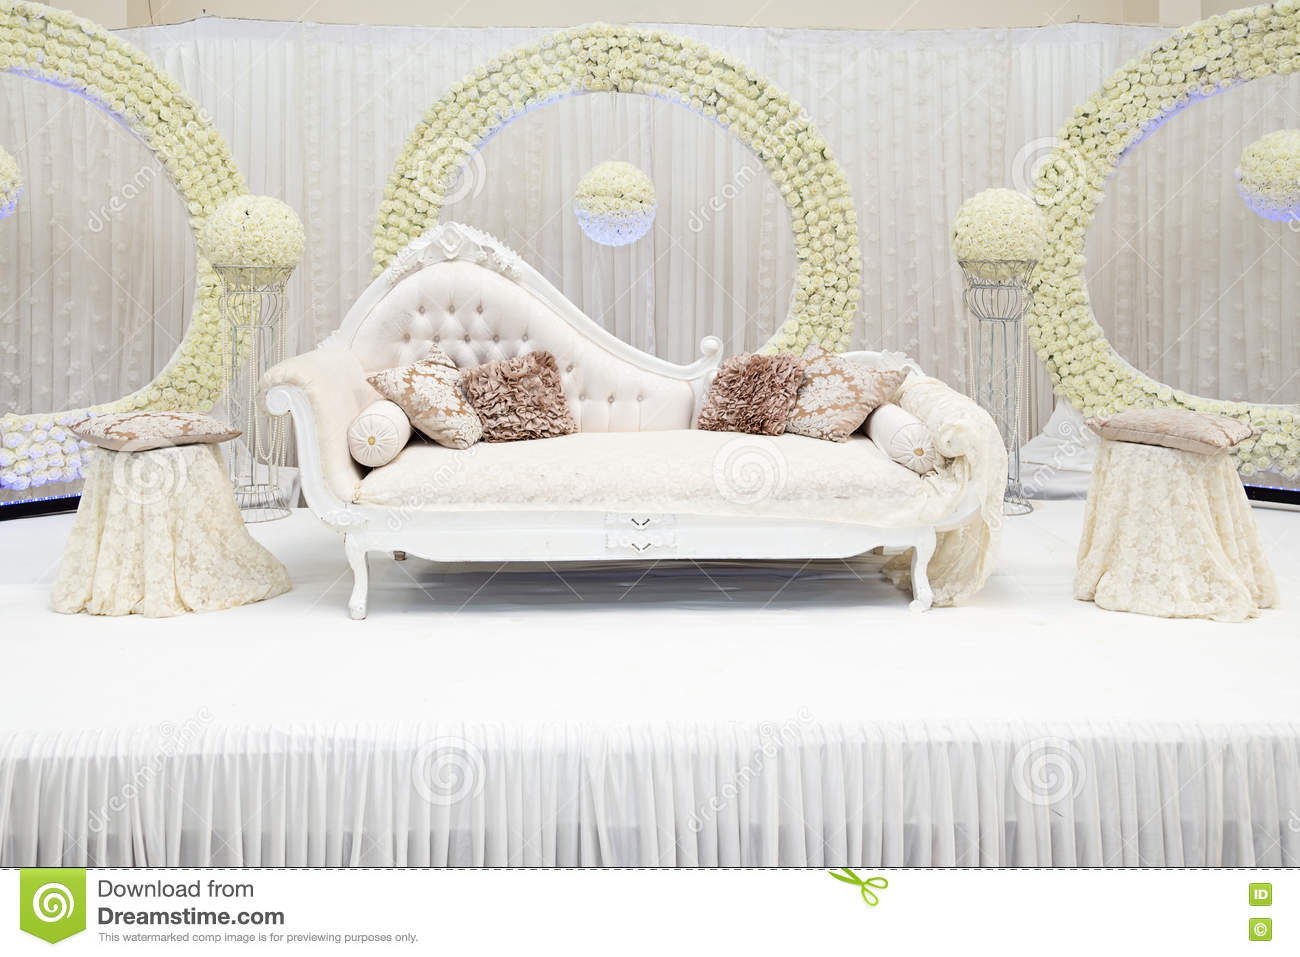 Wedding stage stock photo. Image of decoration, chairs - 76644526